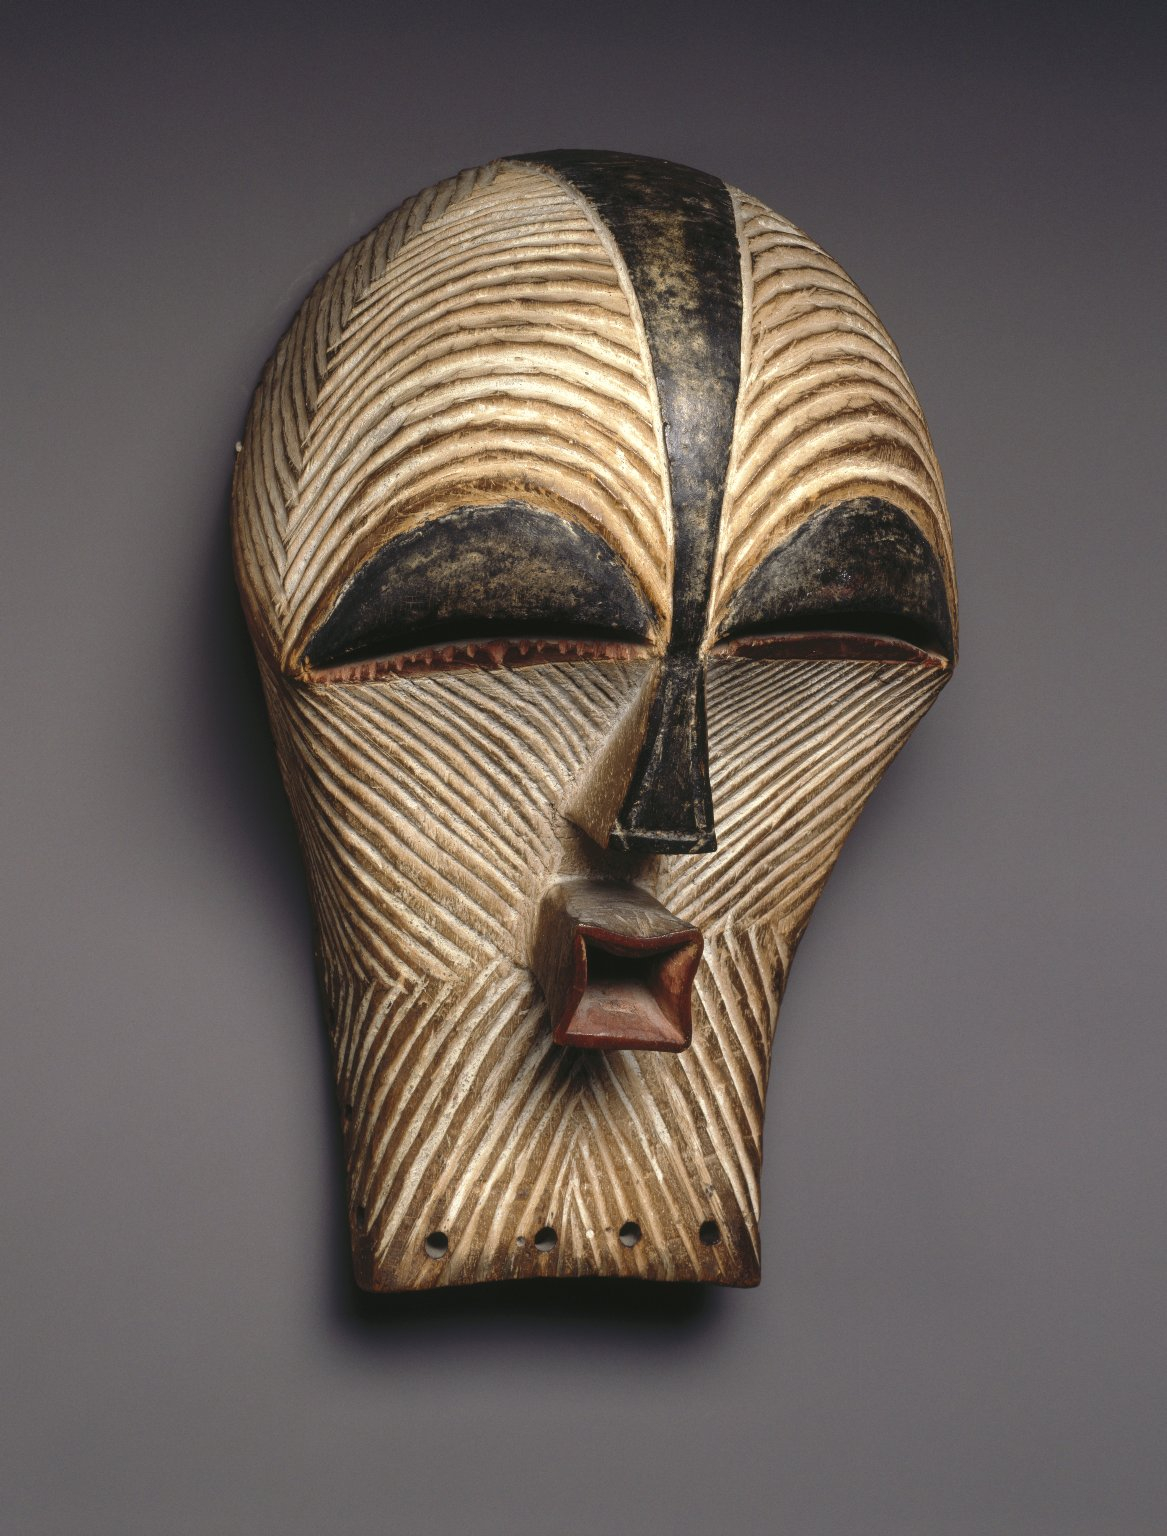 a description of the songye masquerade Description: the elaborate hairstyle of this mask is representative of a mature baule woman it would have been danced at masquerades with the masquerader concealed by raffia the performance of the masquerade is to remind everyone of the social order.